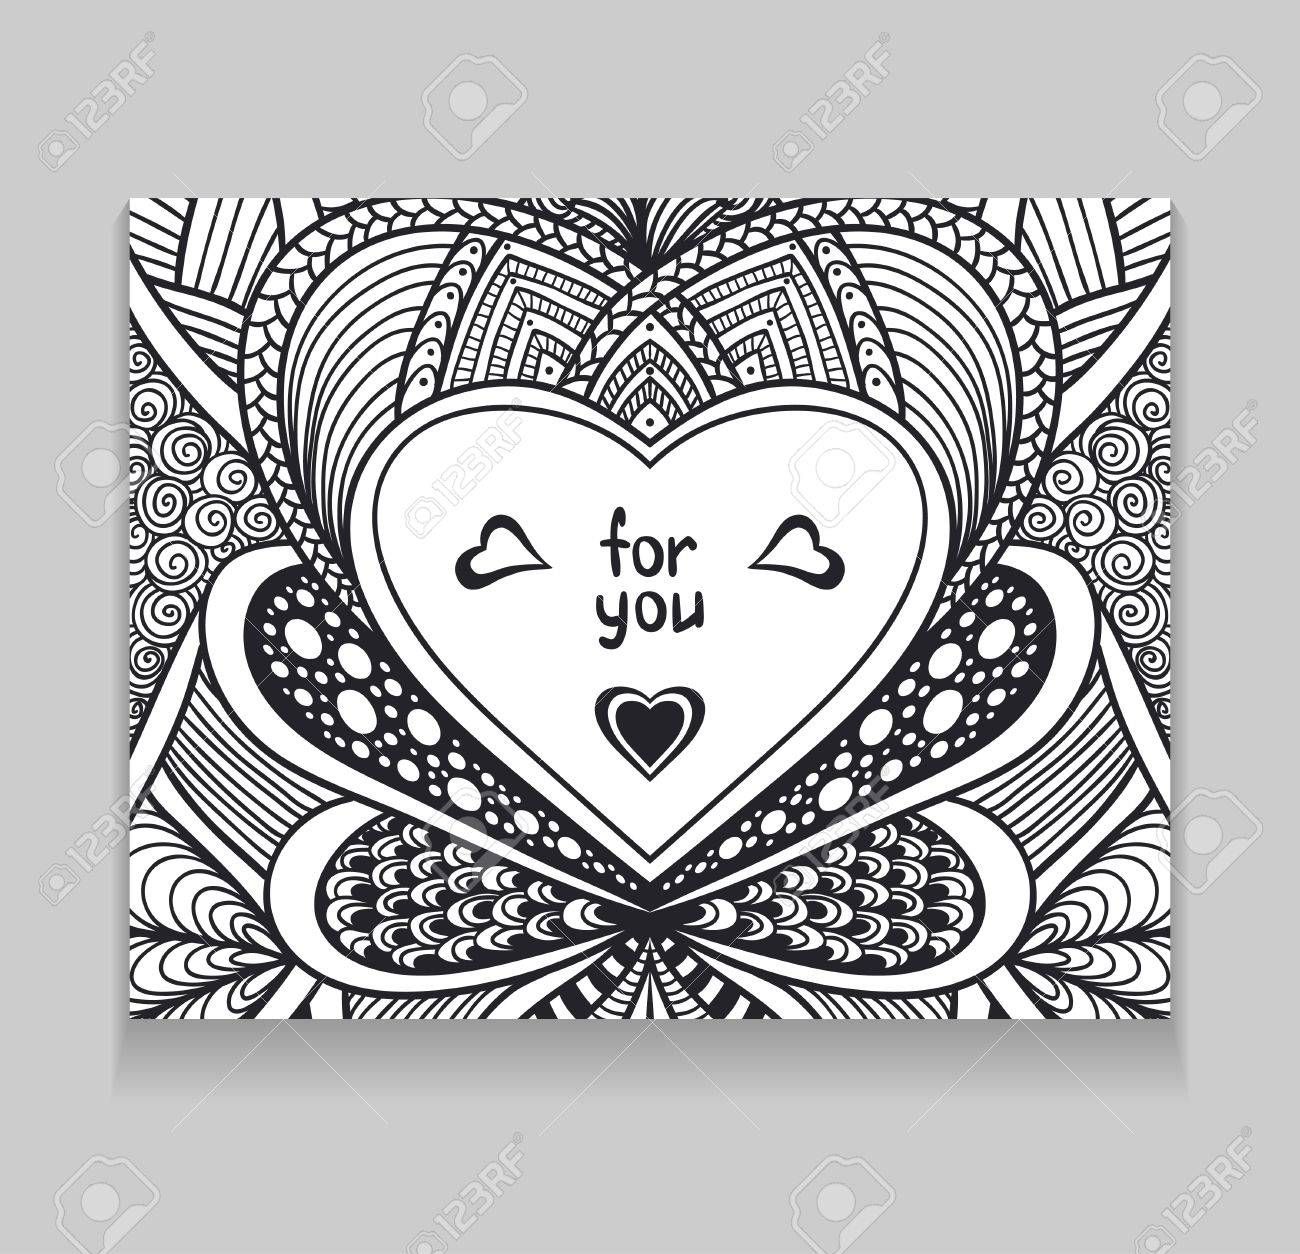 Template With Zen Doodle Style Pattern And Heart Frame Black On White For Coloring Page